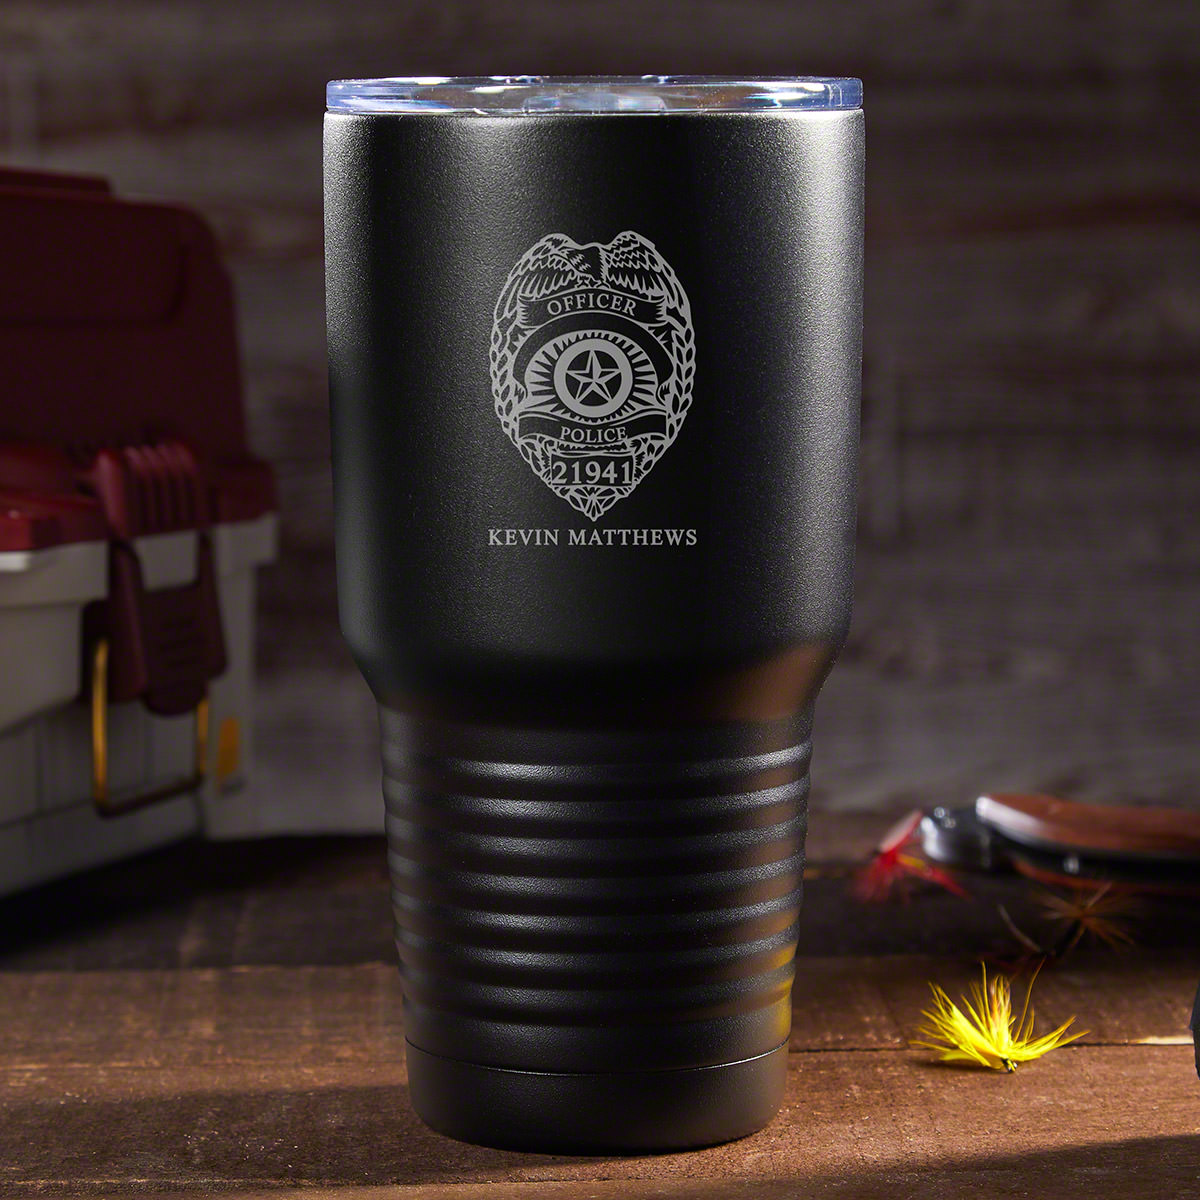 Alert: Code Coffee! For the law enforcement officer on the go, there is no better suspect of convenience than this awesome custom insulated travel mug. Crafted from food grade 18/8 stainless steel that is double walled and vacuum insulated your beverages #mug